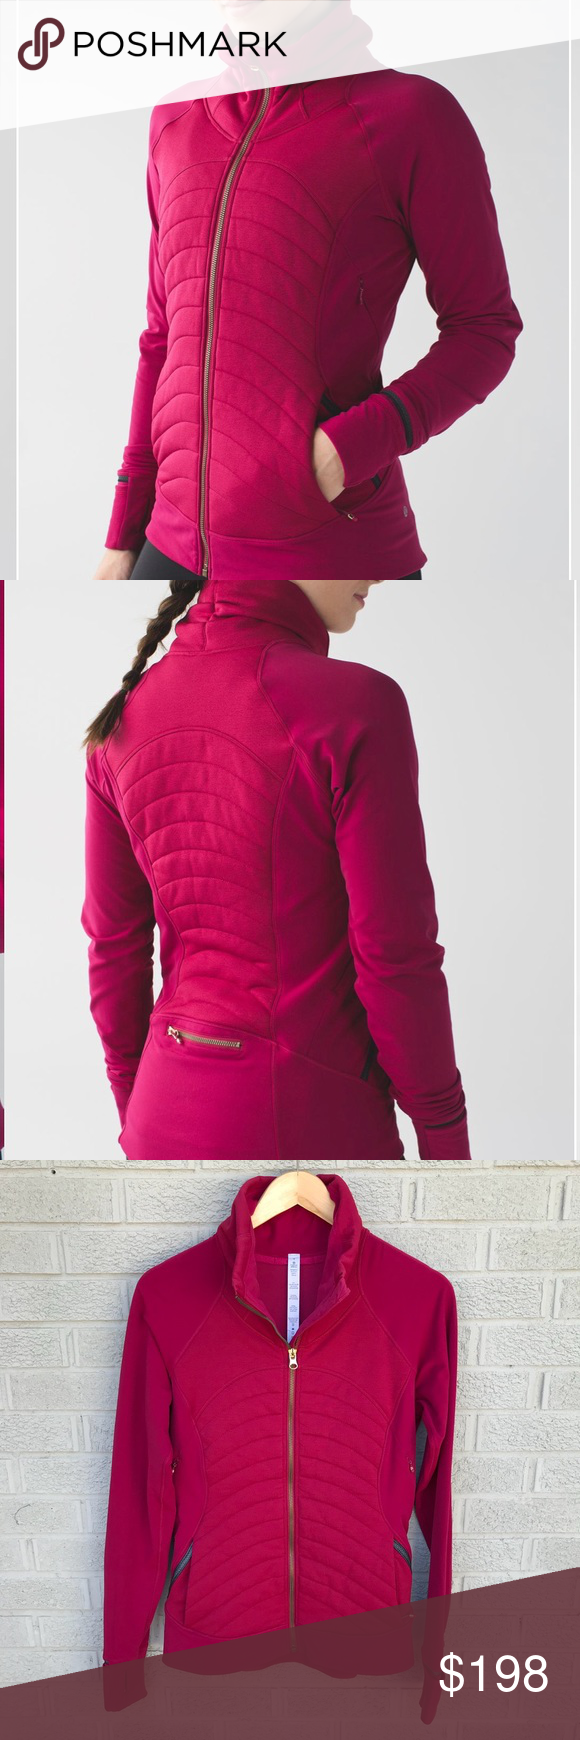 Lululemon fleece out jacket in berry rumble lululemon berry and